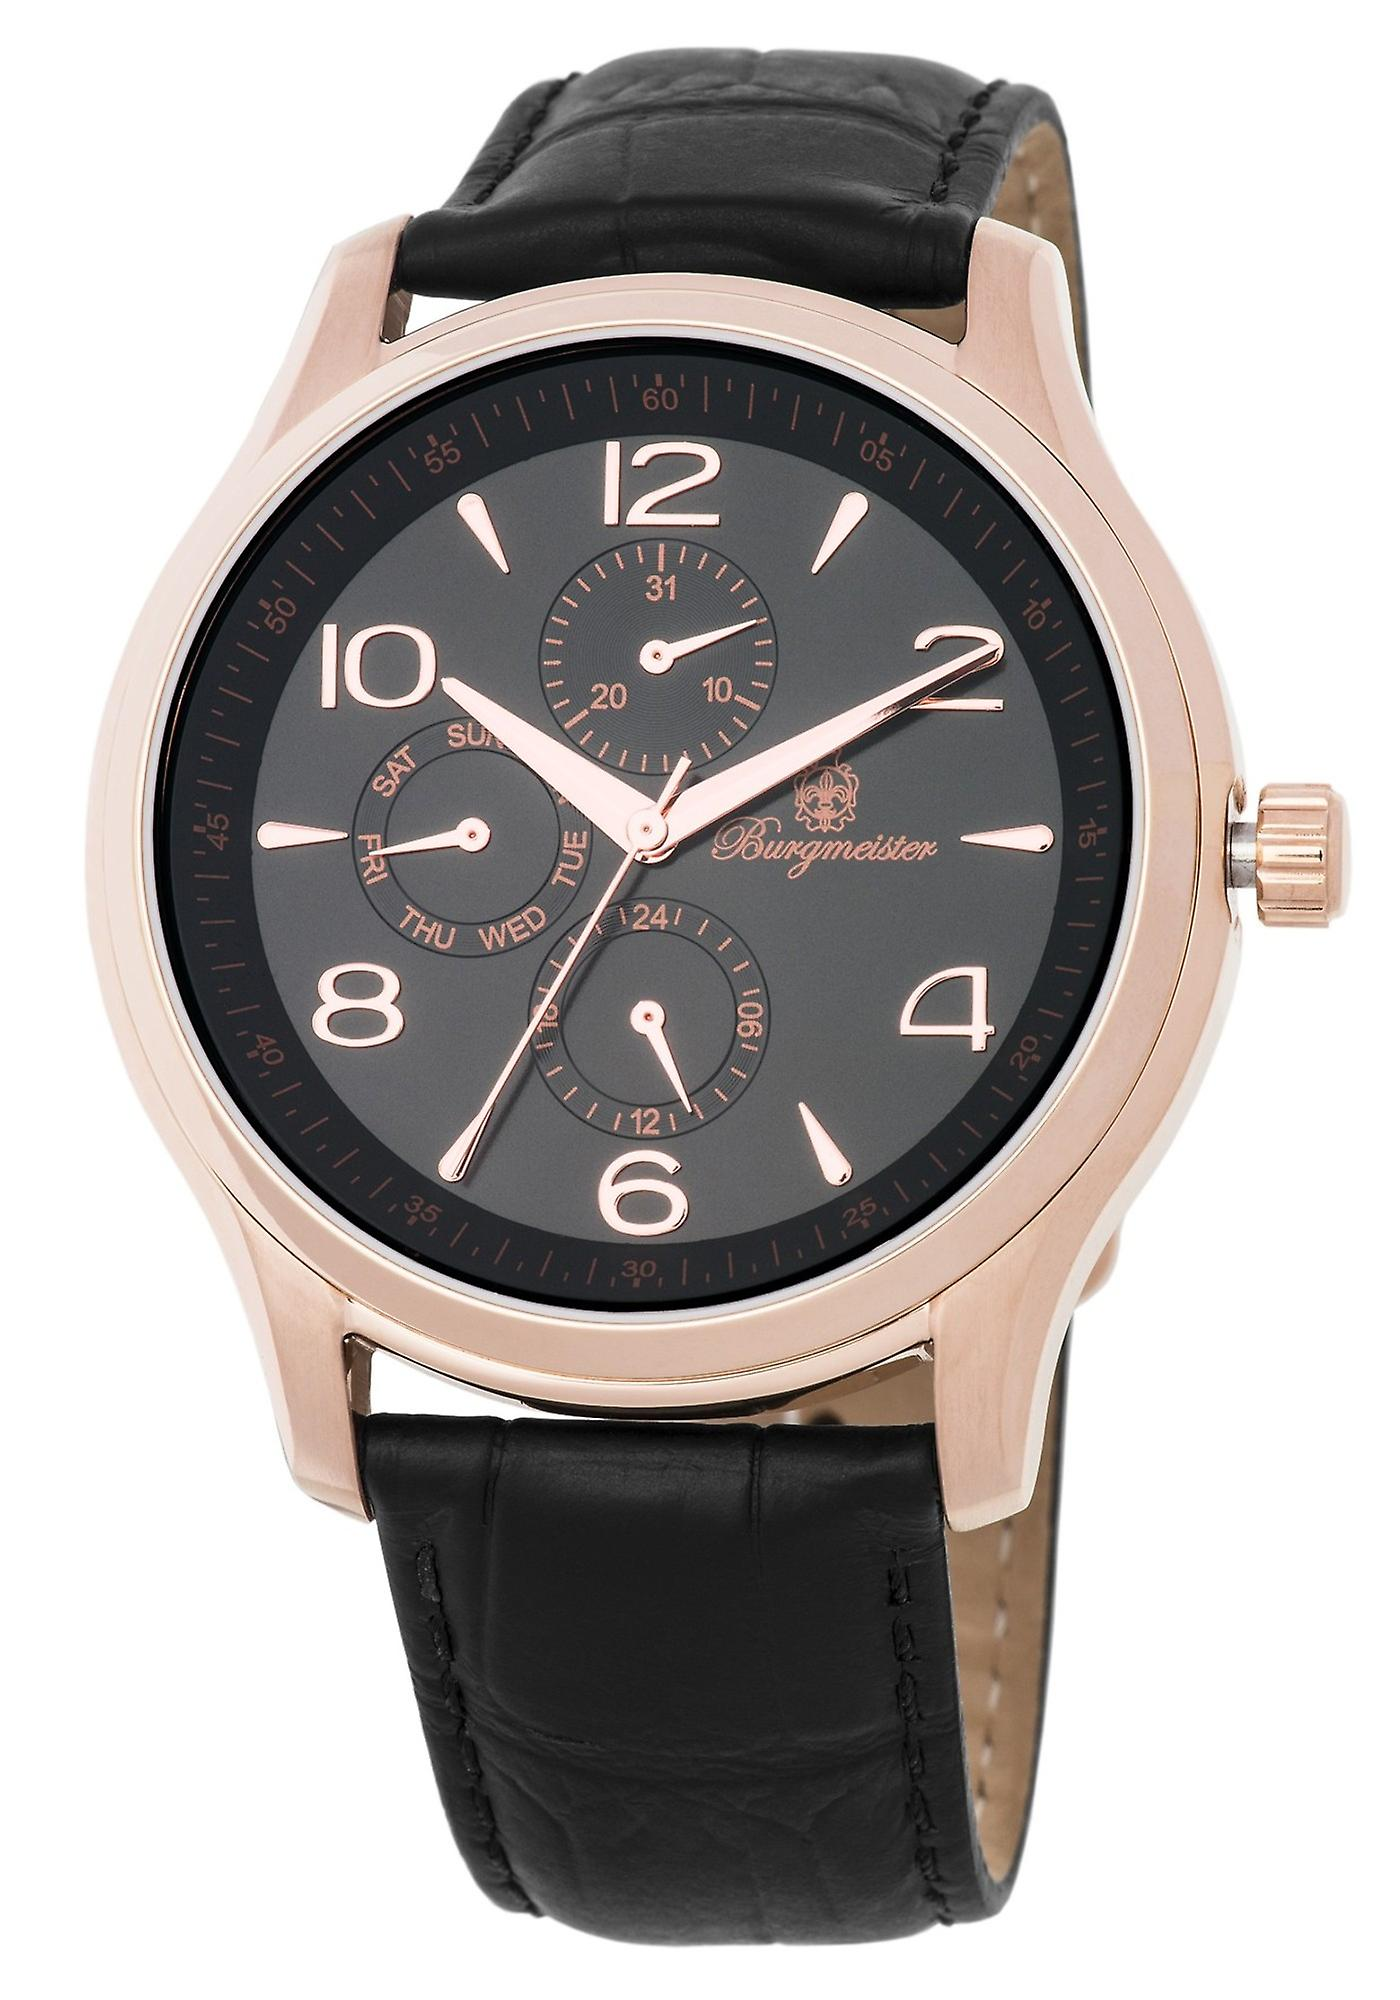 Burgmeister BMT04-322 Montpellier, Gents watch, Analogue display, Quartz with Seiko Movement - Water resistant, Stylish leather strap, Classic men's watch